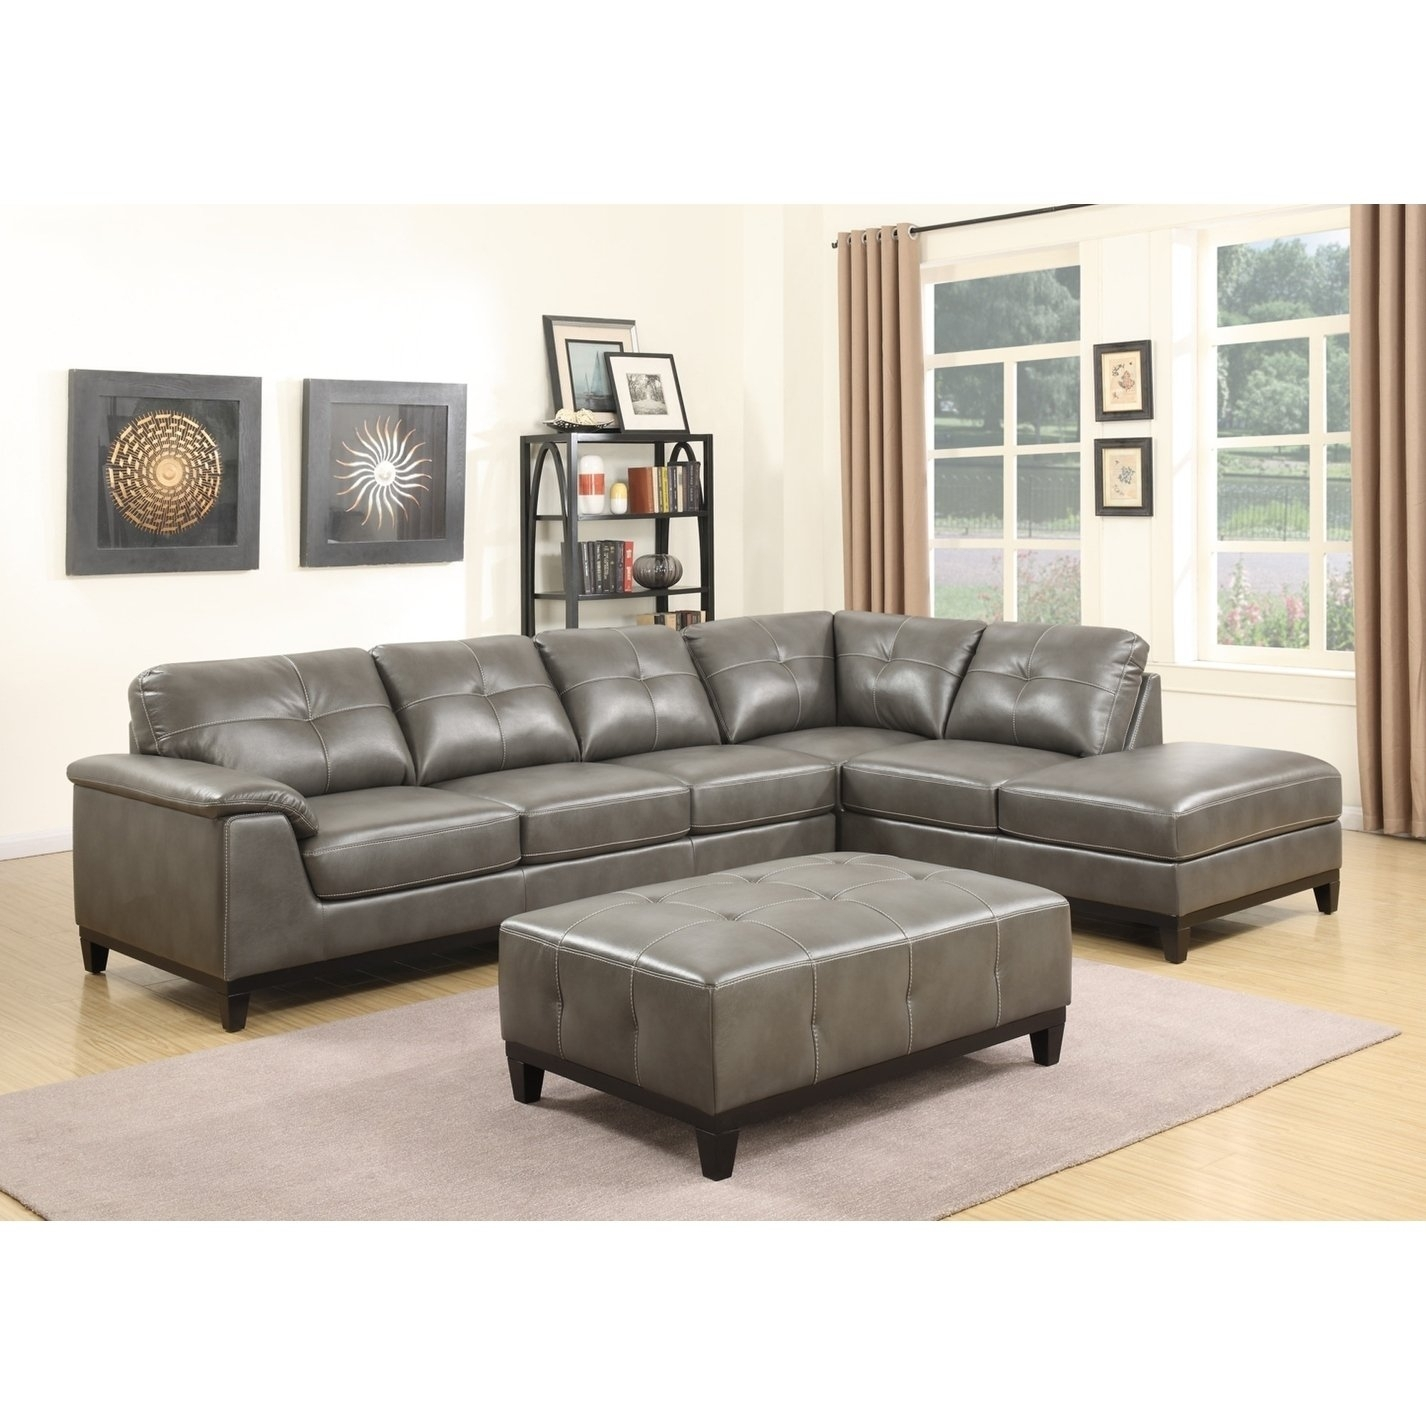 Shop Emerald Home Marquis 3-Piece Sectional With 6 Seats - Free with Haven 3 Piece Sectionals (Image 28 of 32)